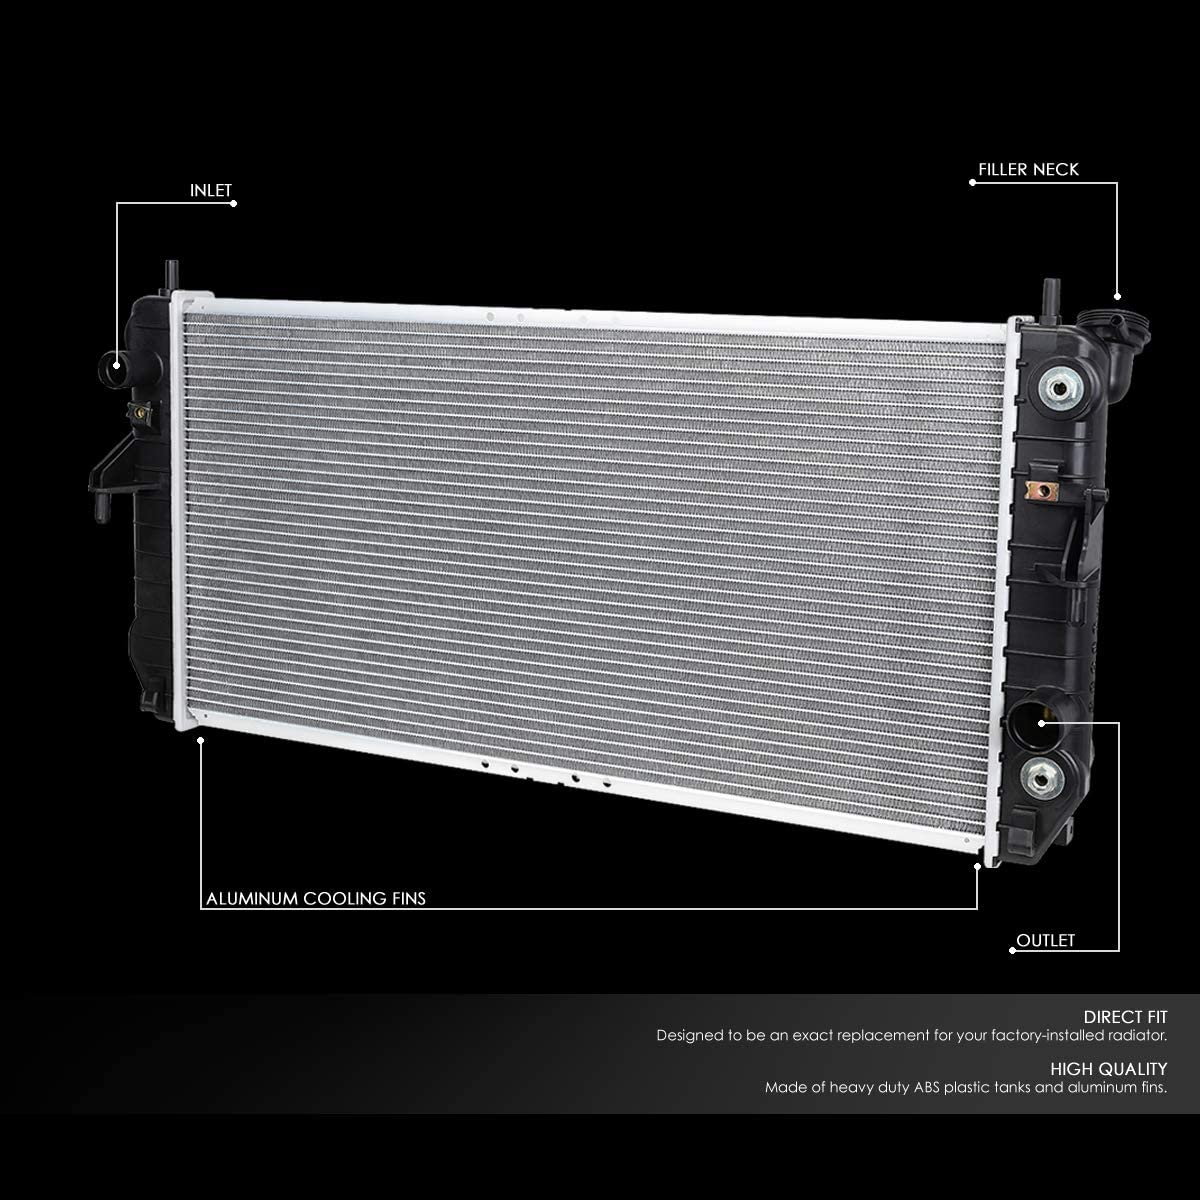 FOR 06-08 BUICK LUCERNE 3.8L AT OE STYLE FULL ALUMINUM CORE RADIATOR DPI 2854